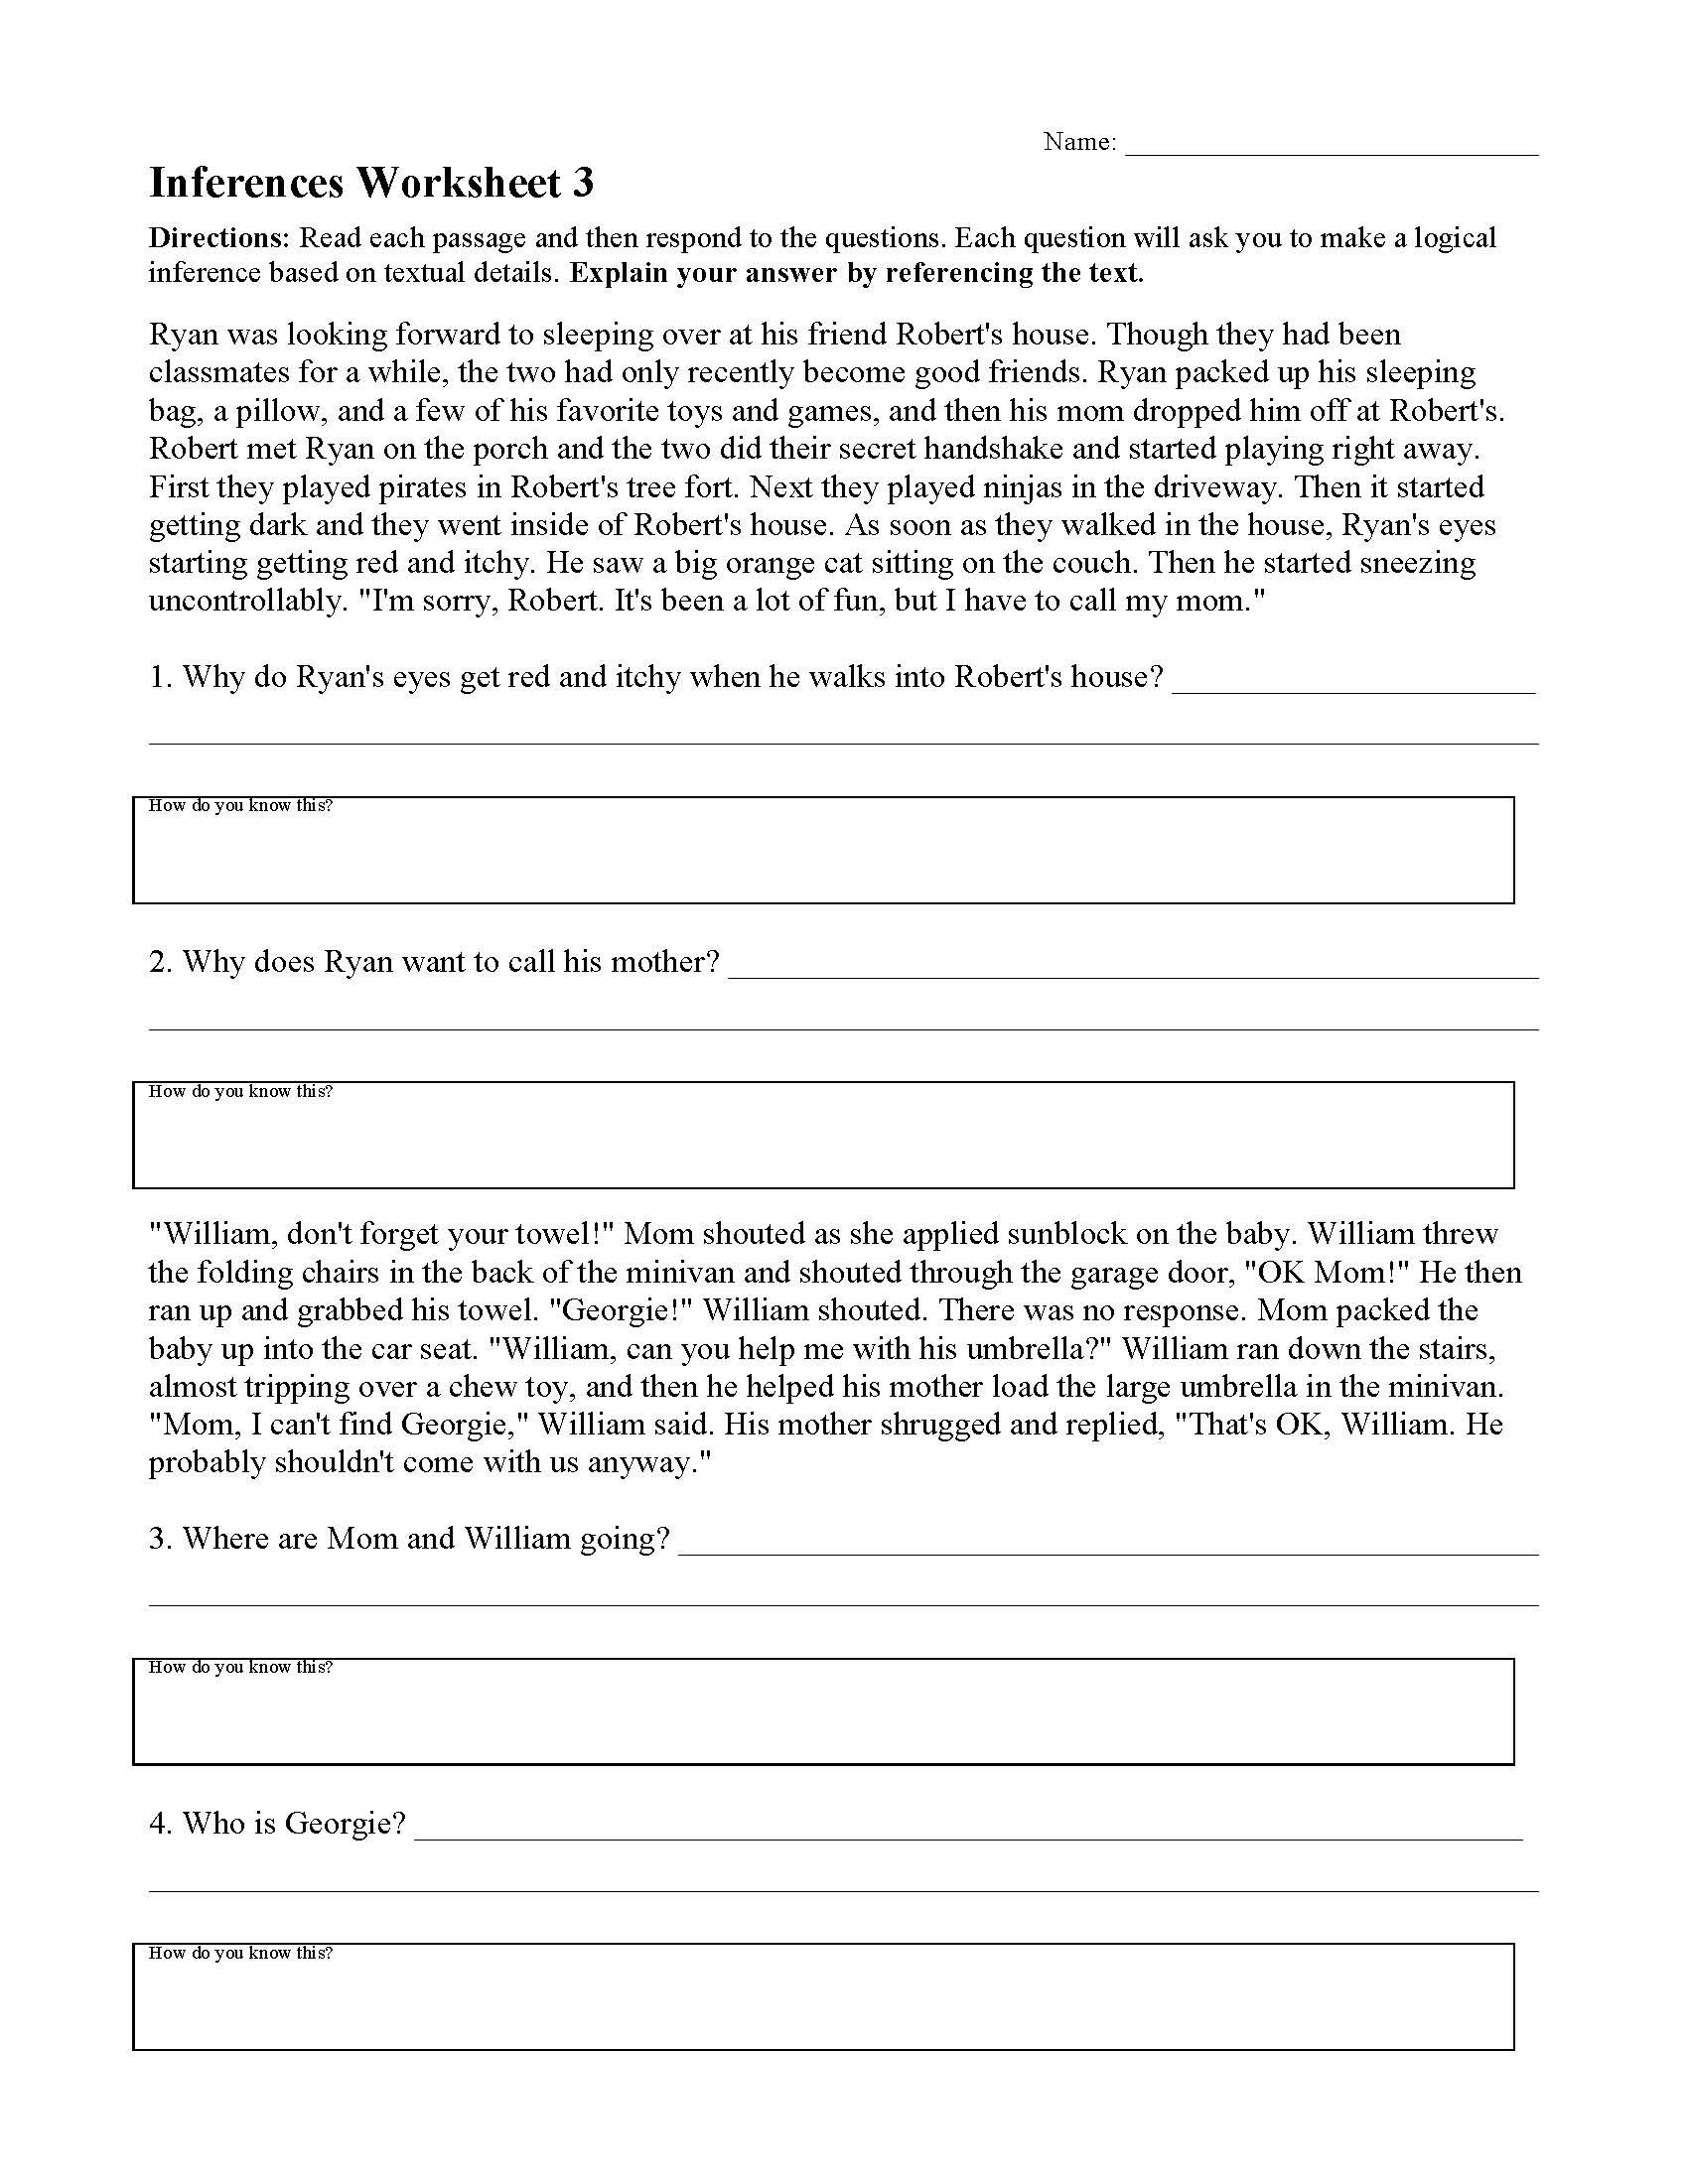 4th Grade Inferencing Worksheets Inferences Worksheets